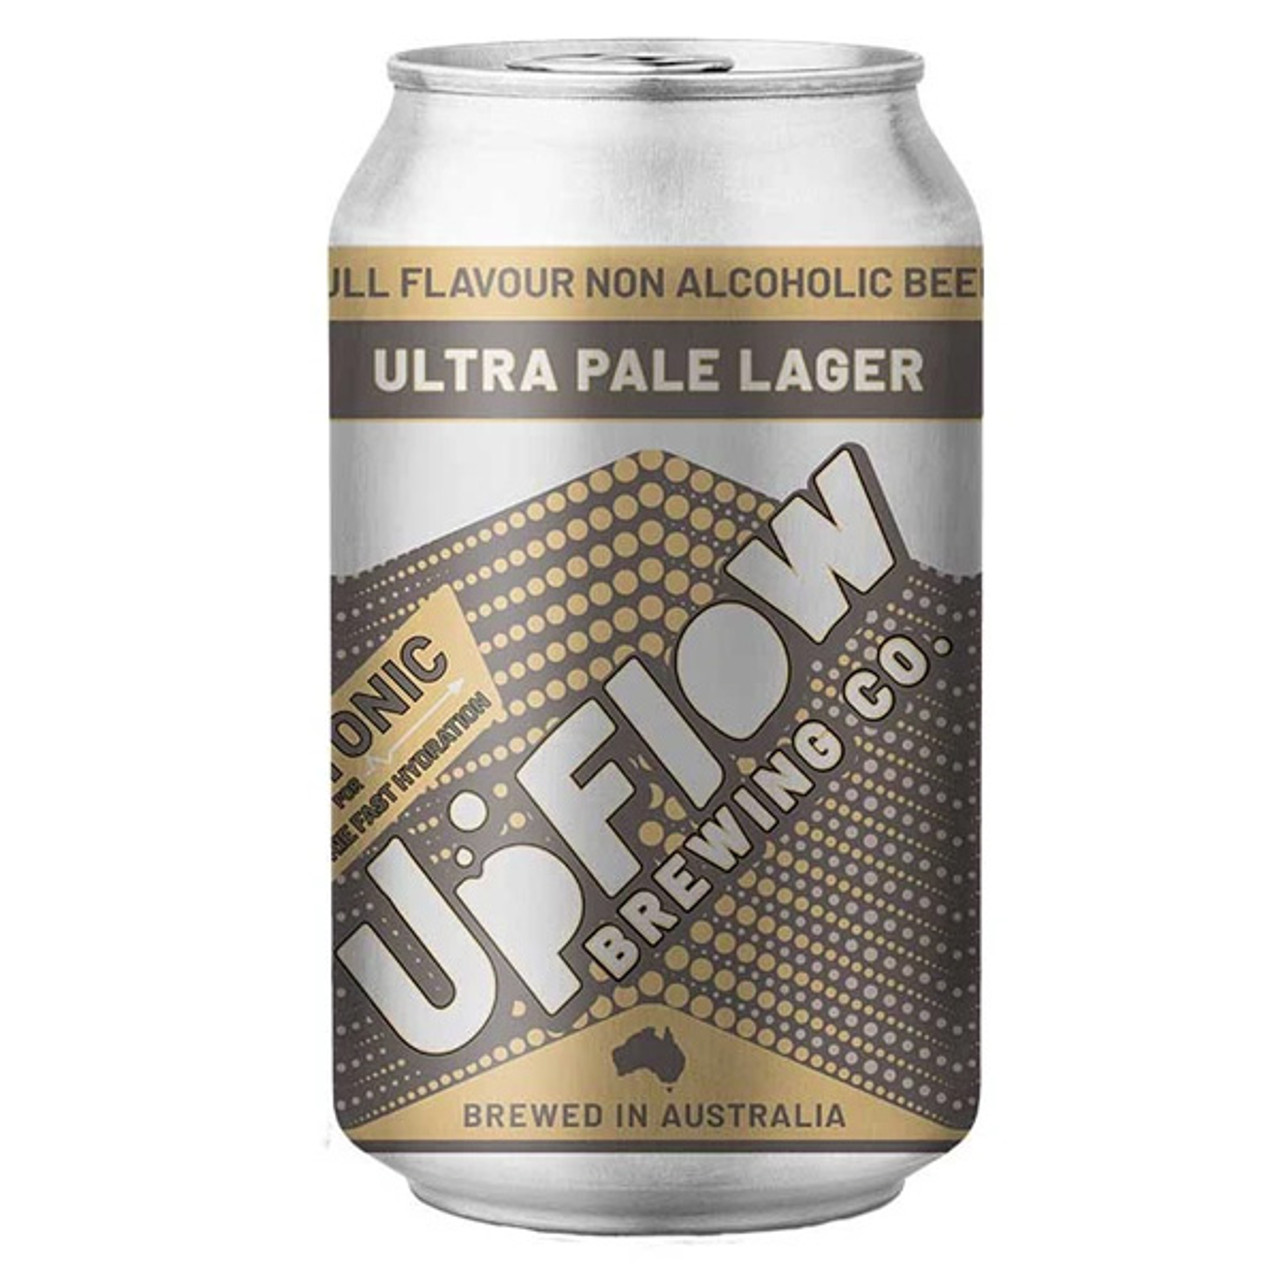 Rat Dog Drinks - Upflow Brewing Co. Non Alcoholic Craft Beer. Ultra Pale Lager. Australian Made. Shop Online Australia.